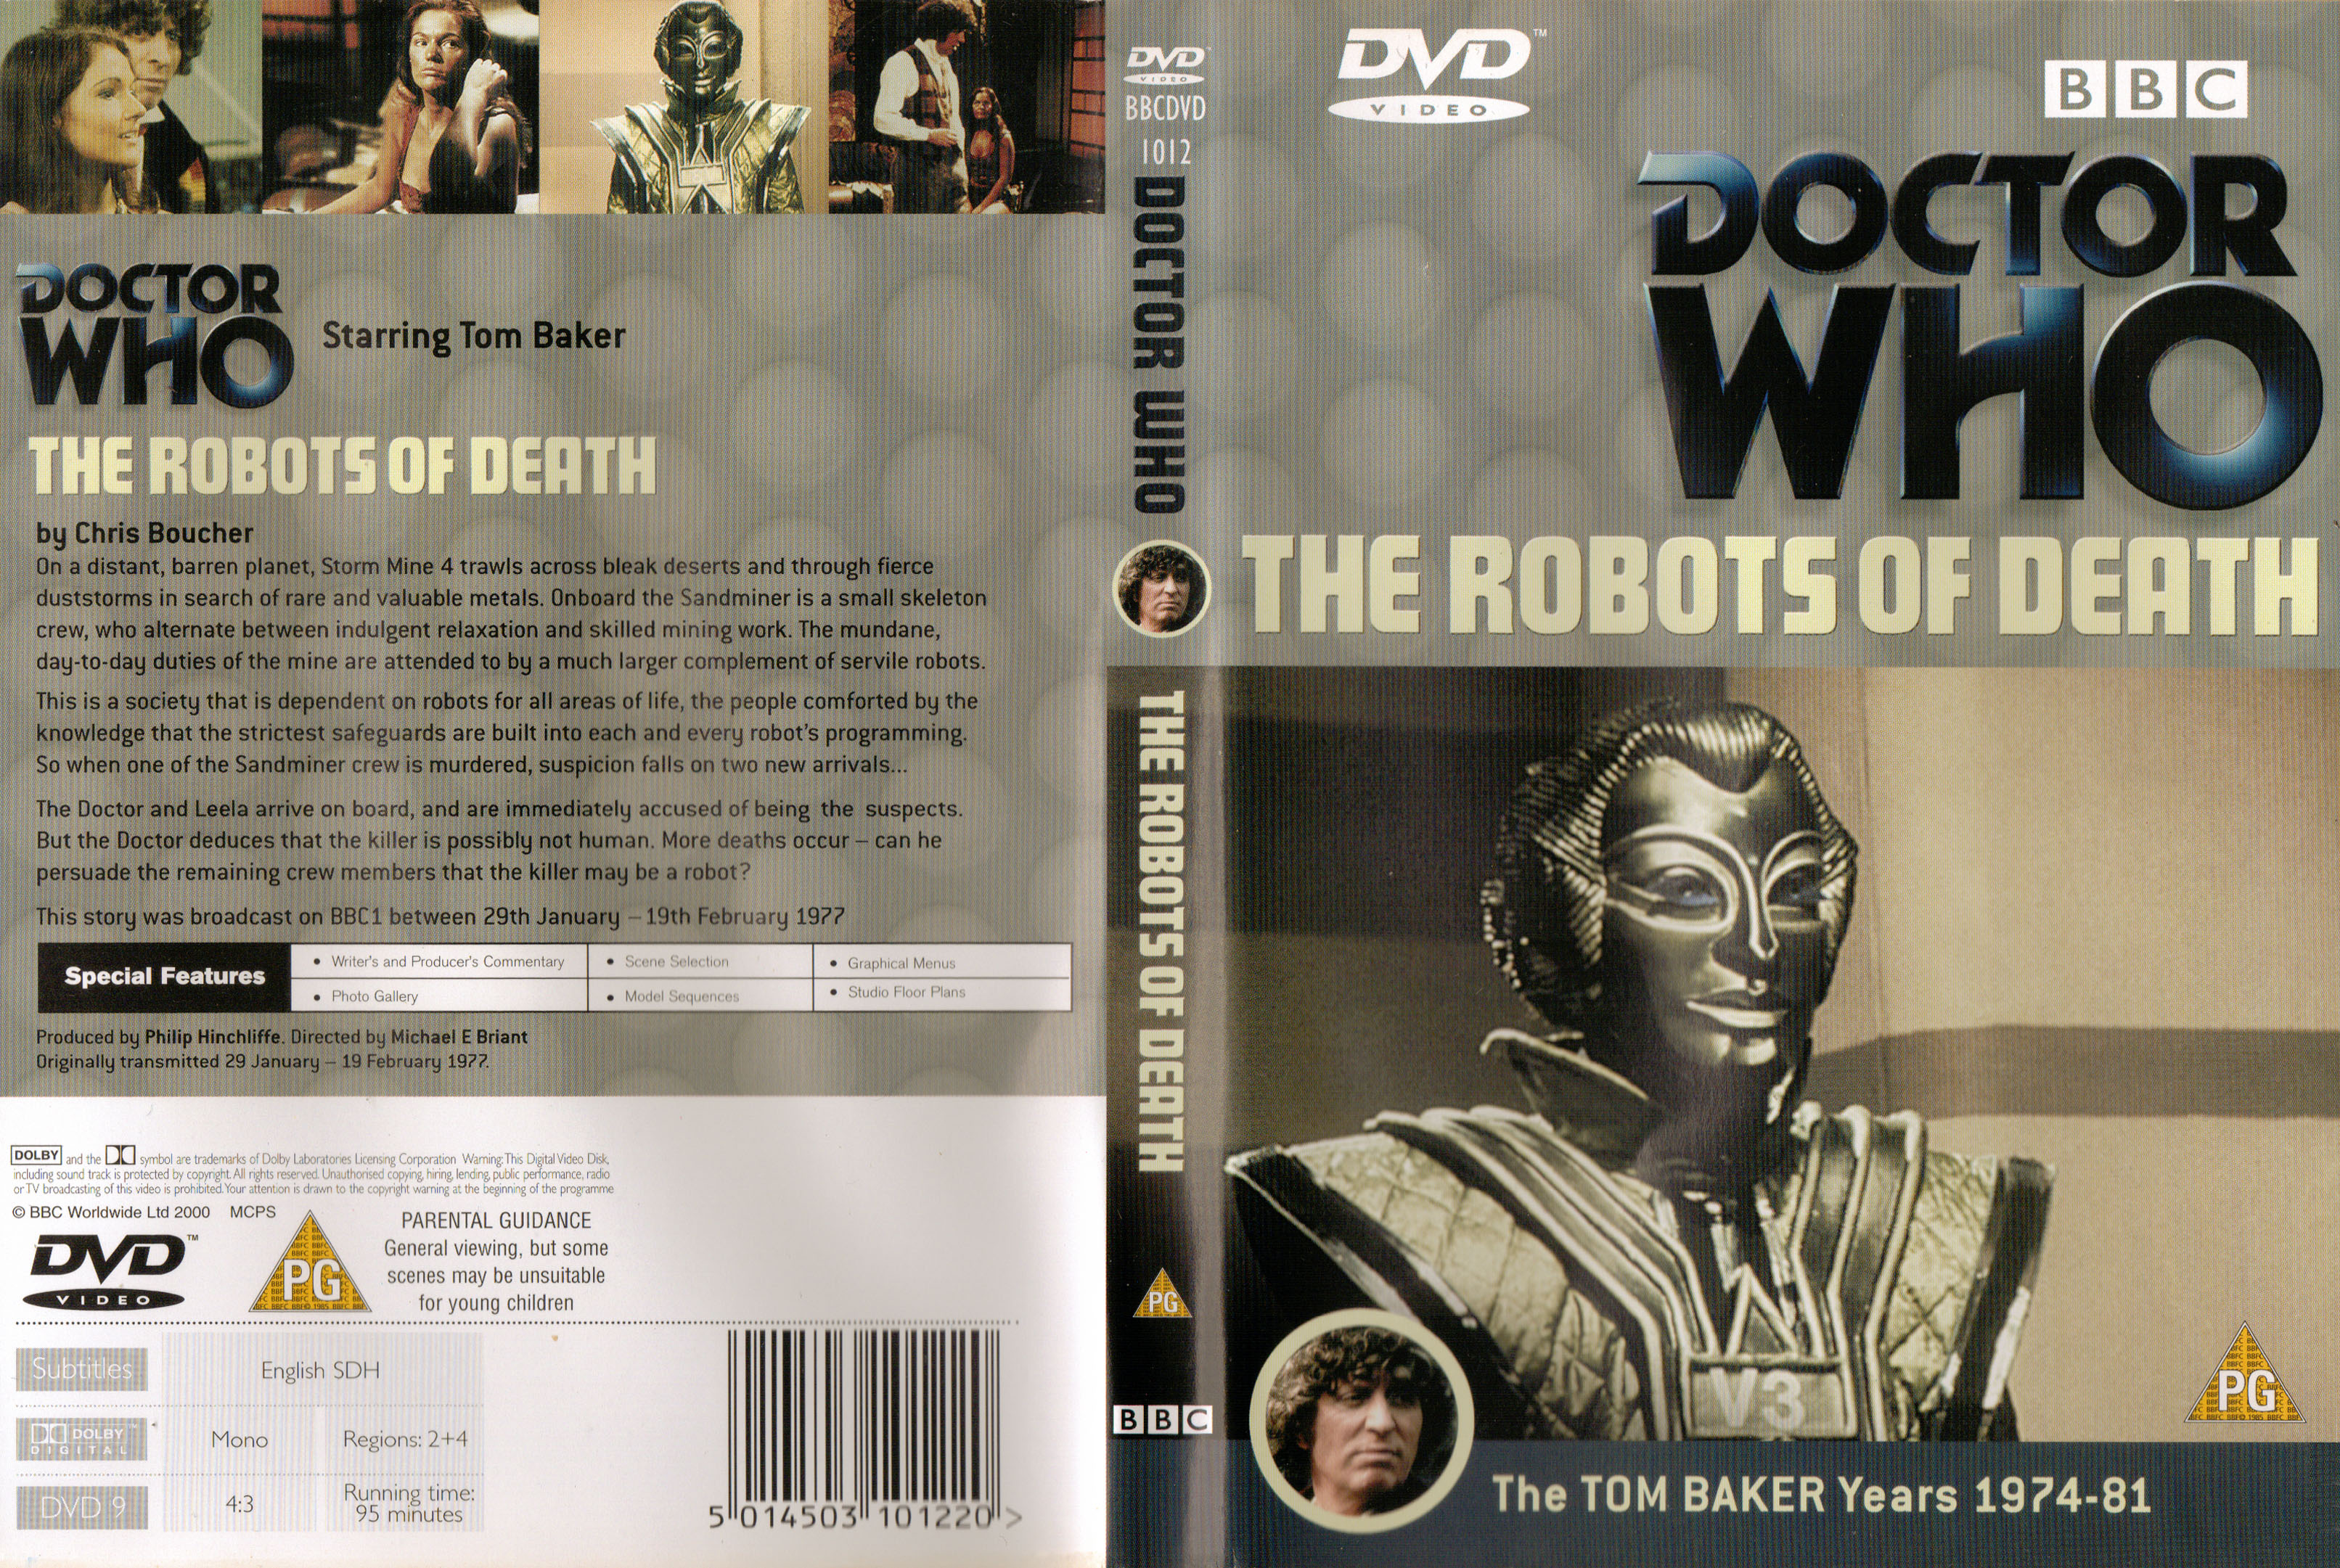 The Robots of Death DVD